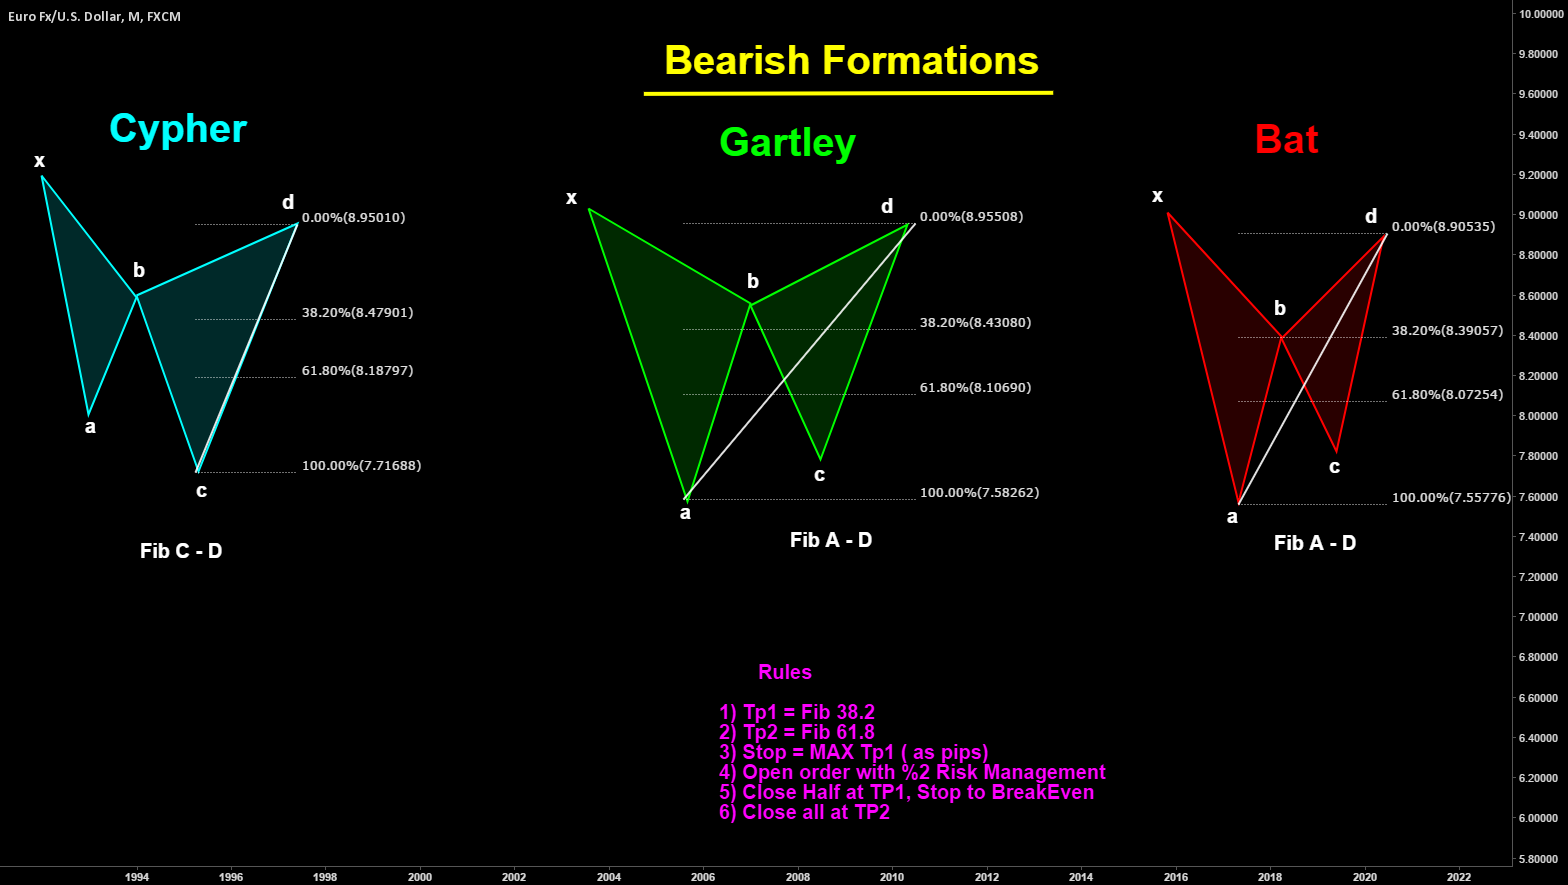 BEARISH HARMONIC FORMATIONS